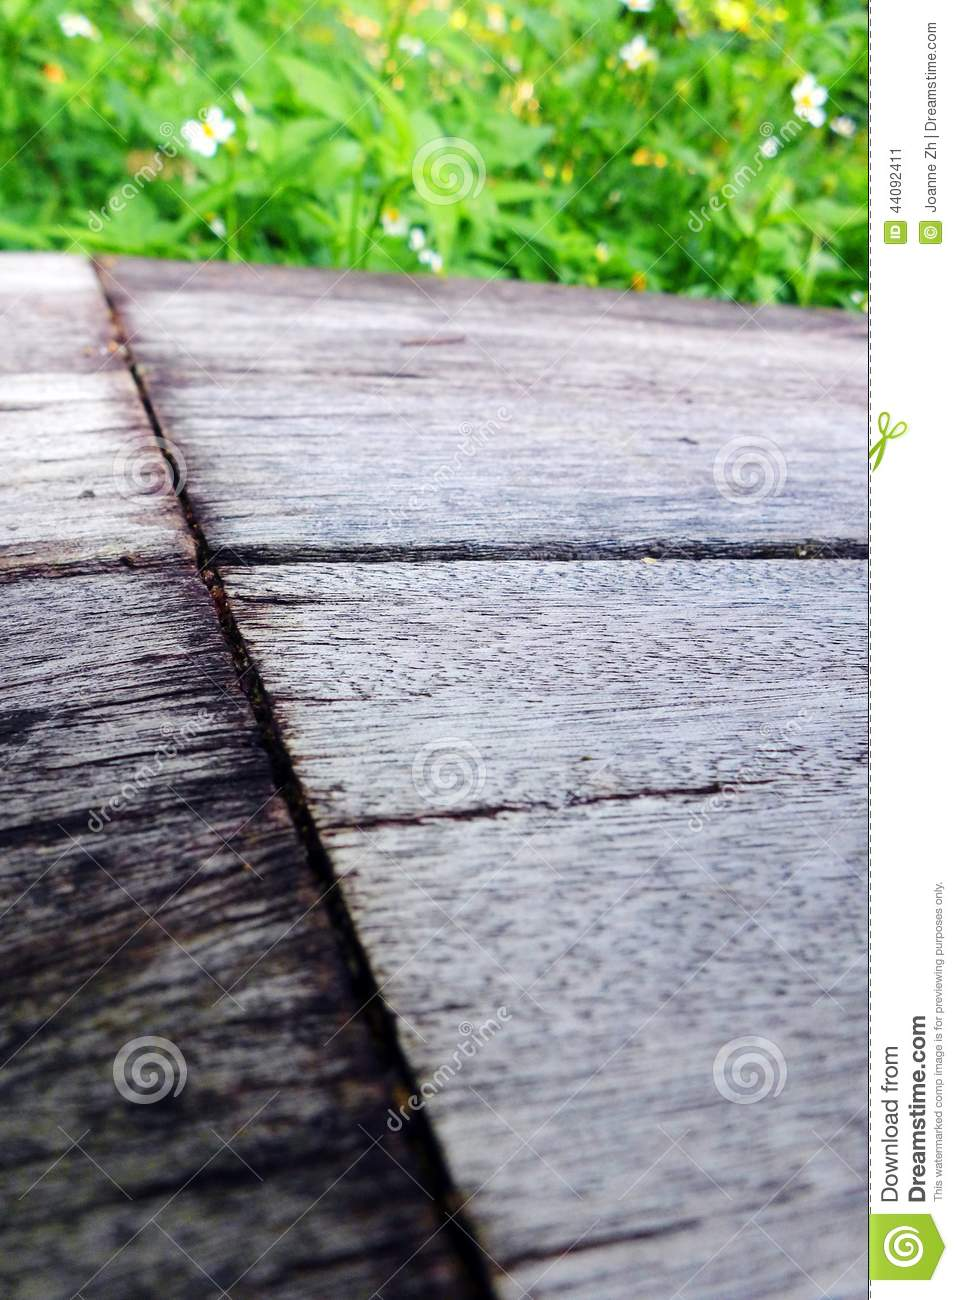 Old Wooden Bench Texture, White Flowers Stock Image